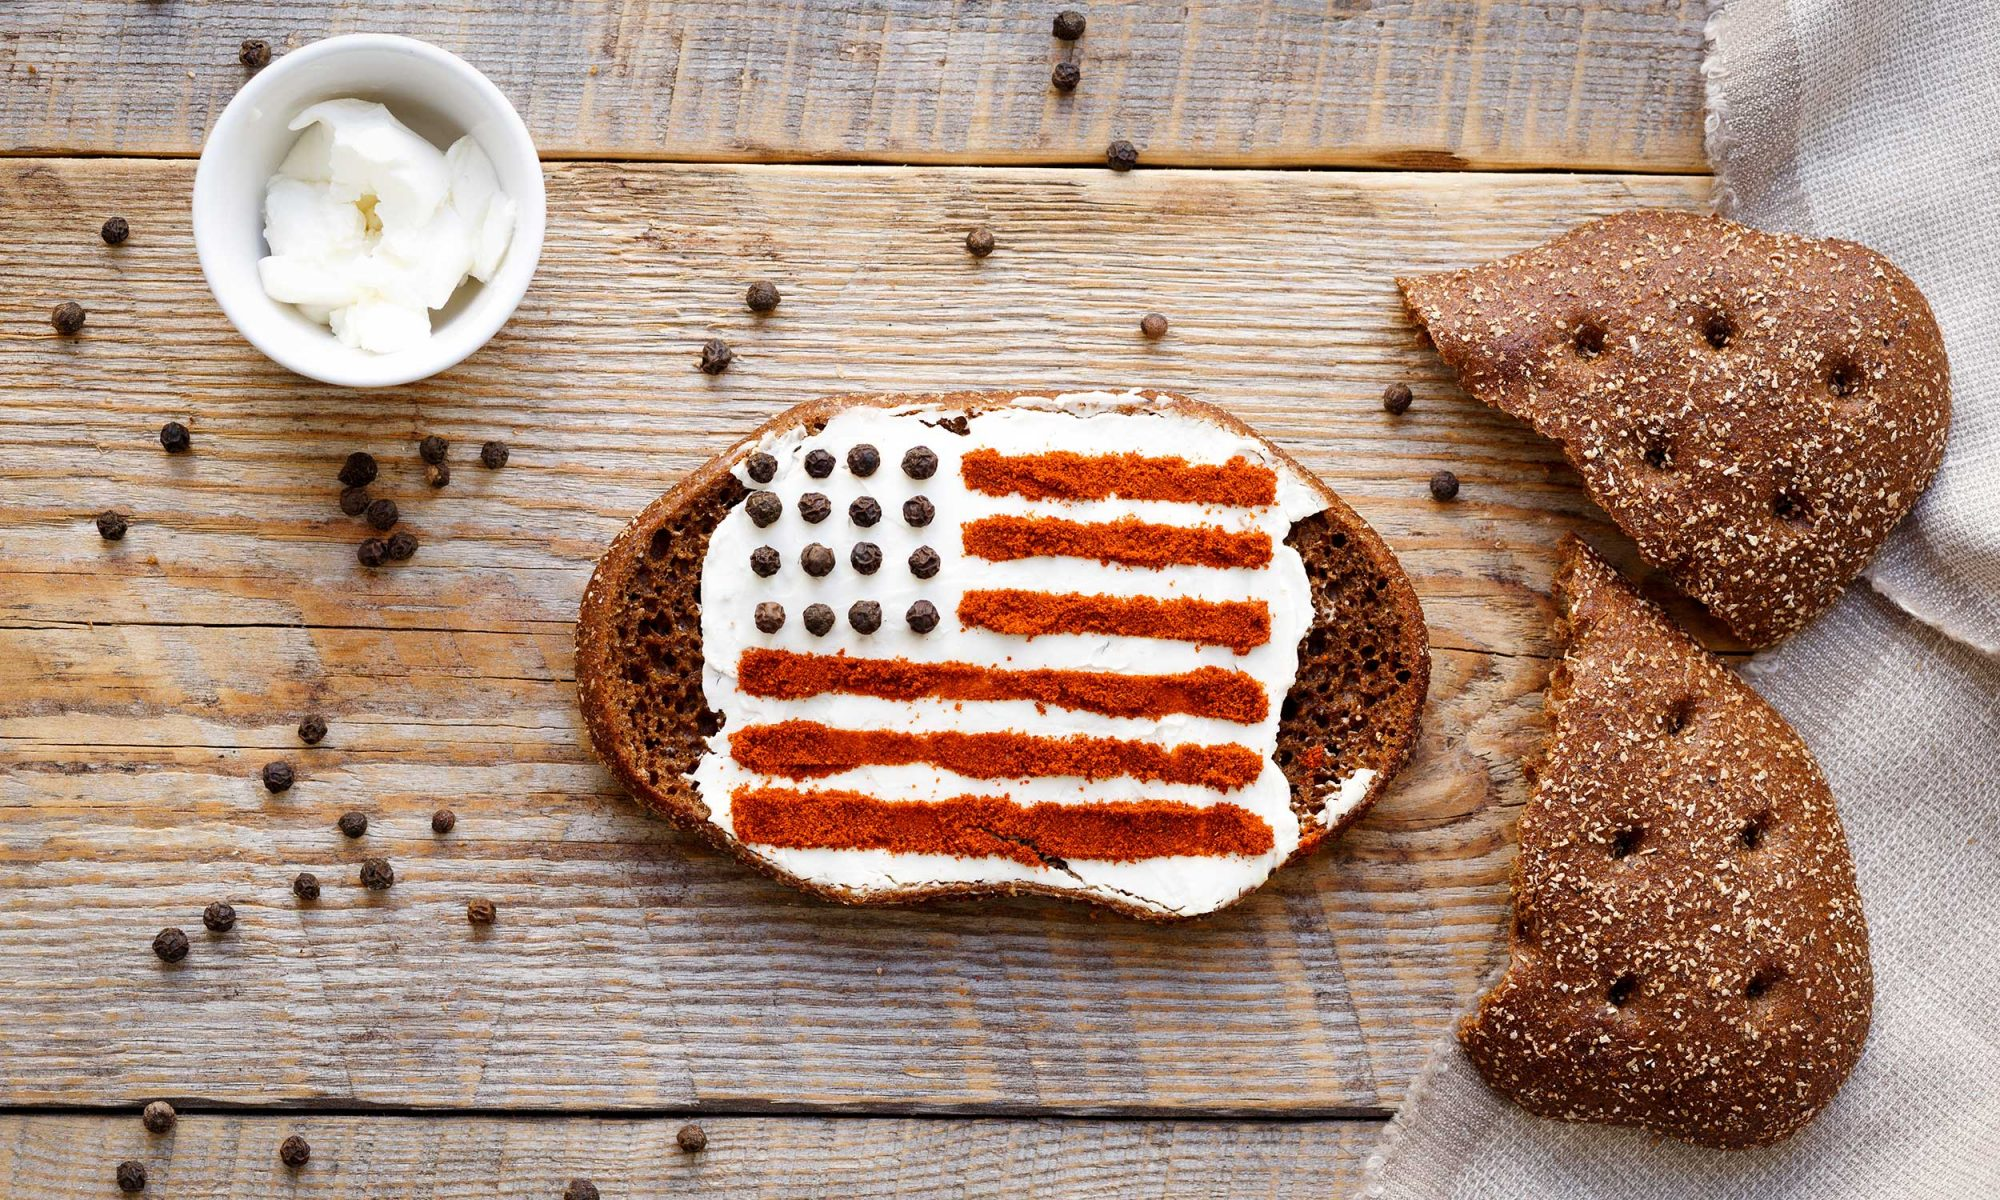 EC: The Most Popular Brunch in Each State, According to Pinterest